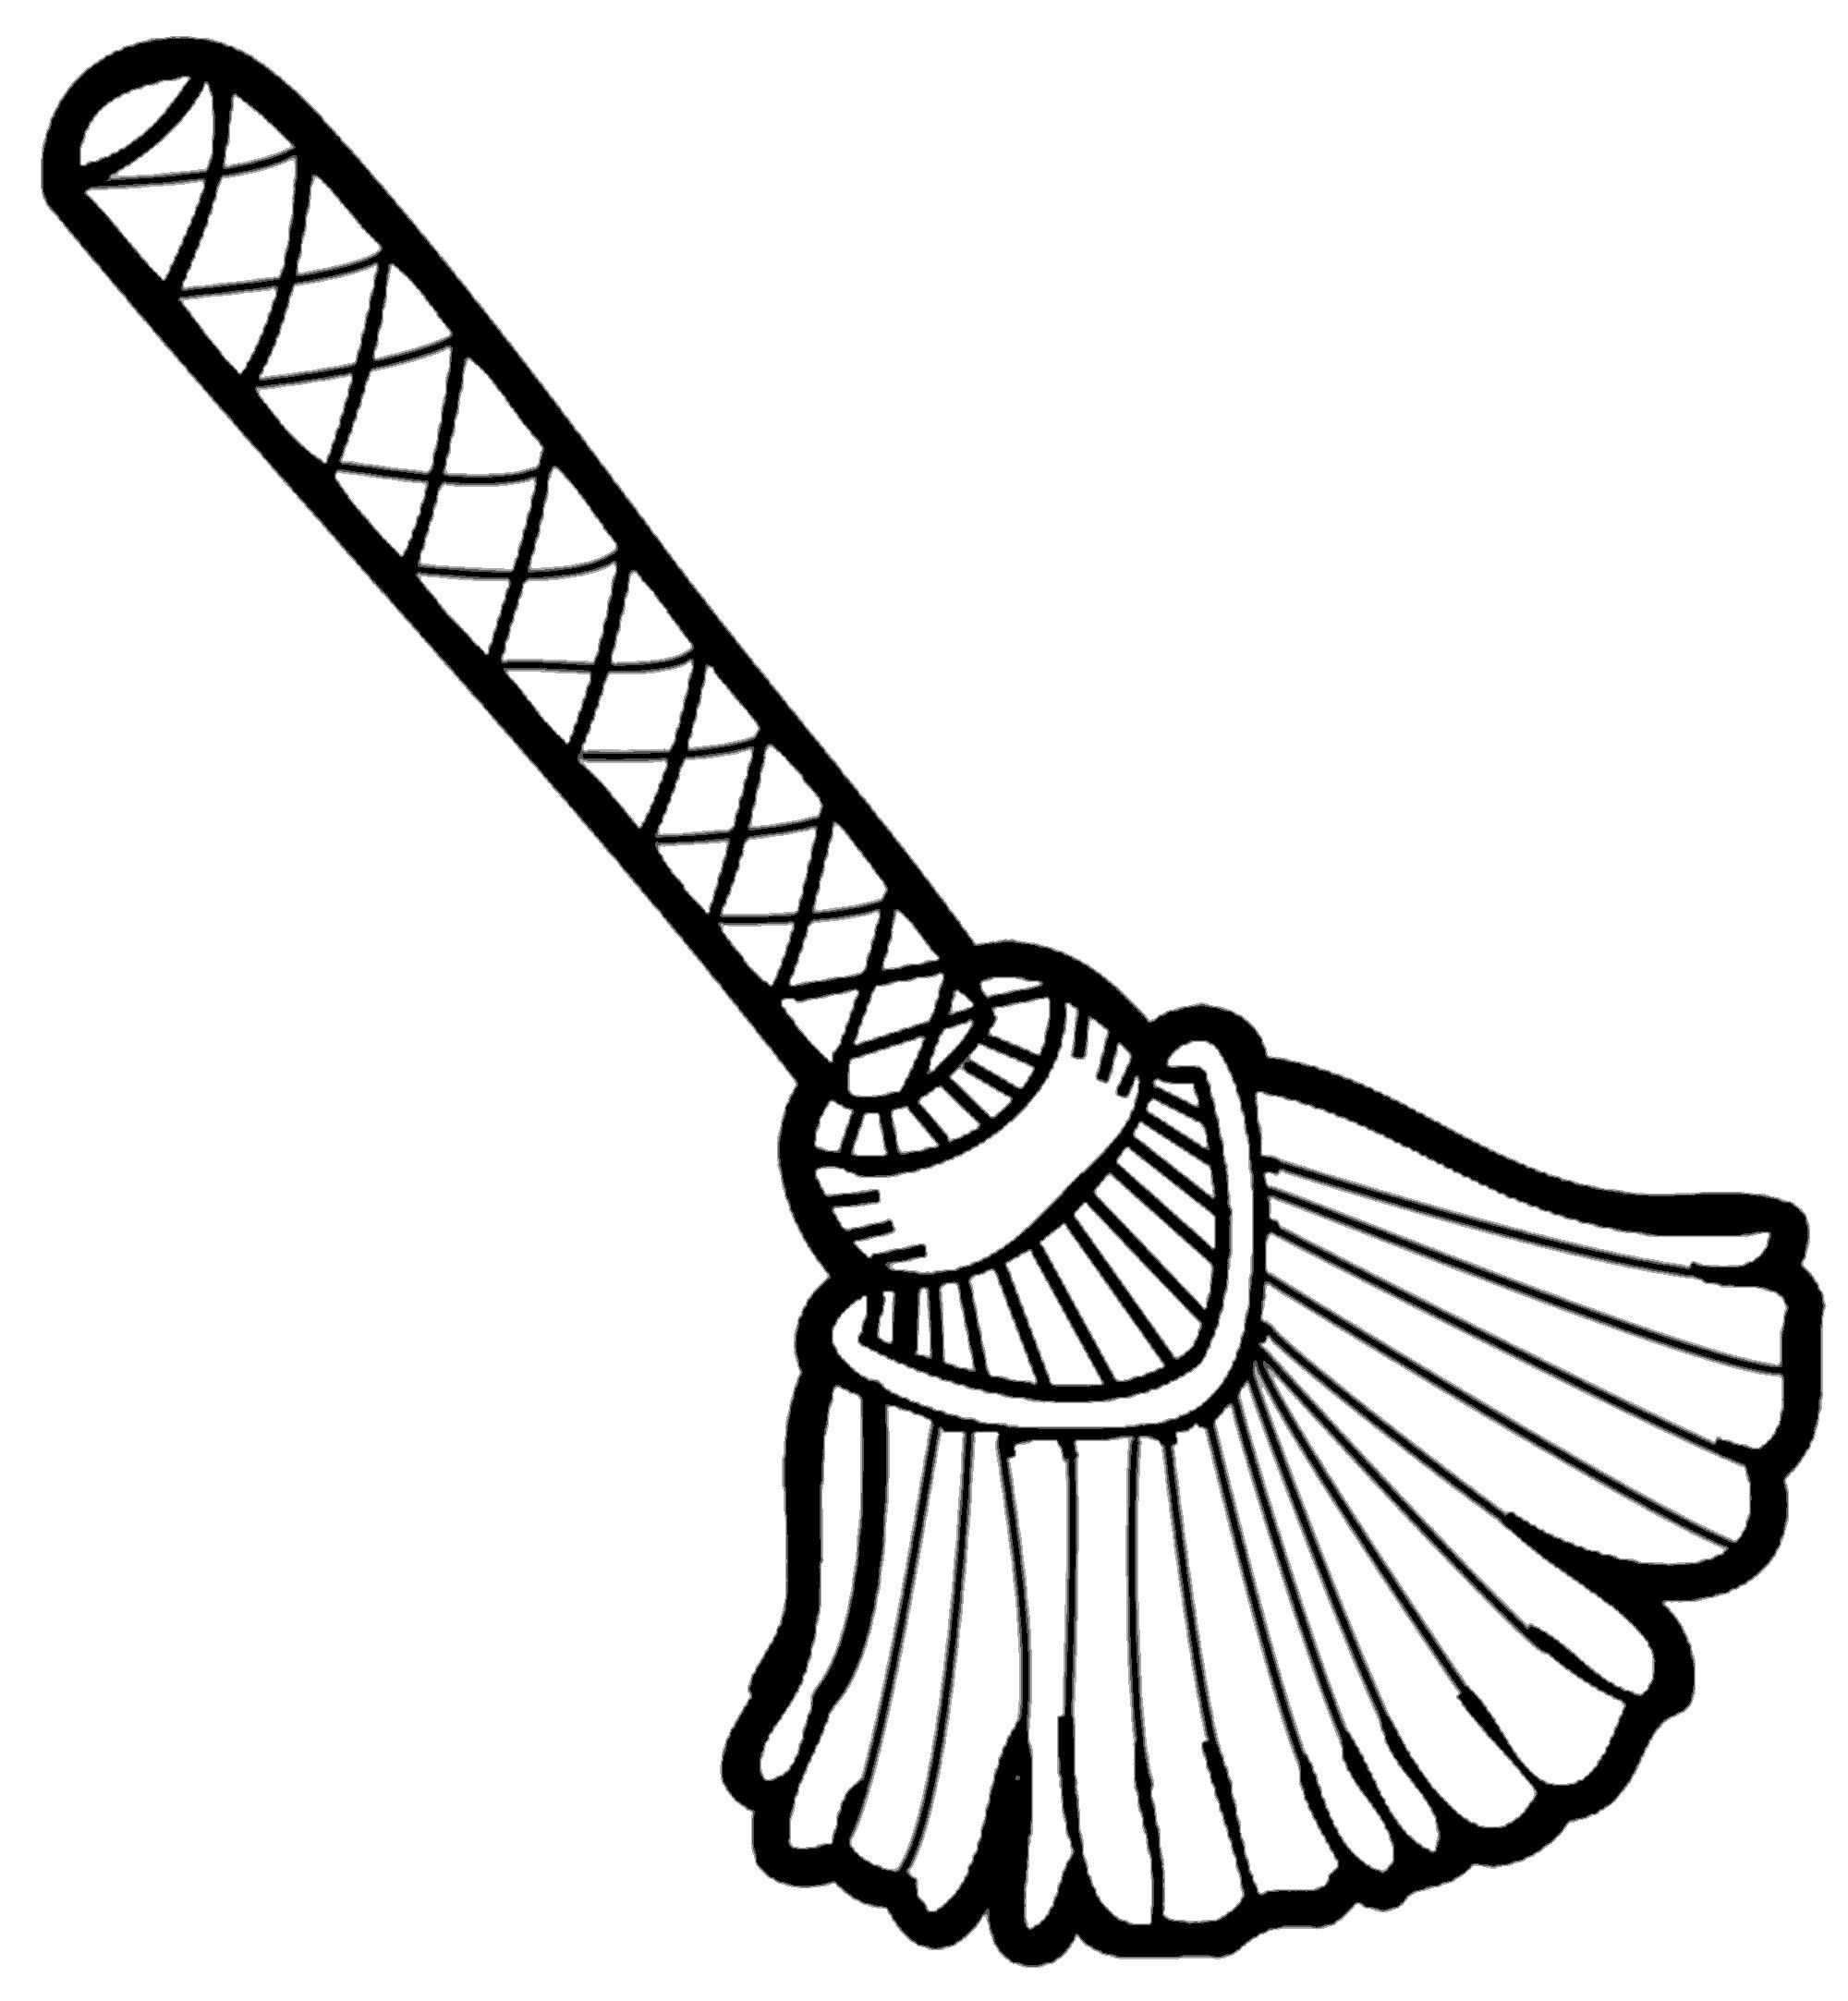 Broom clipart black and white. Dustpan drawing at getdrawings